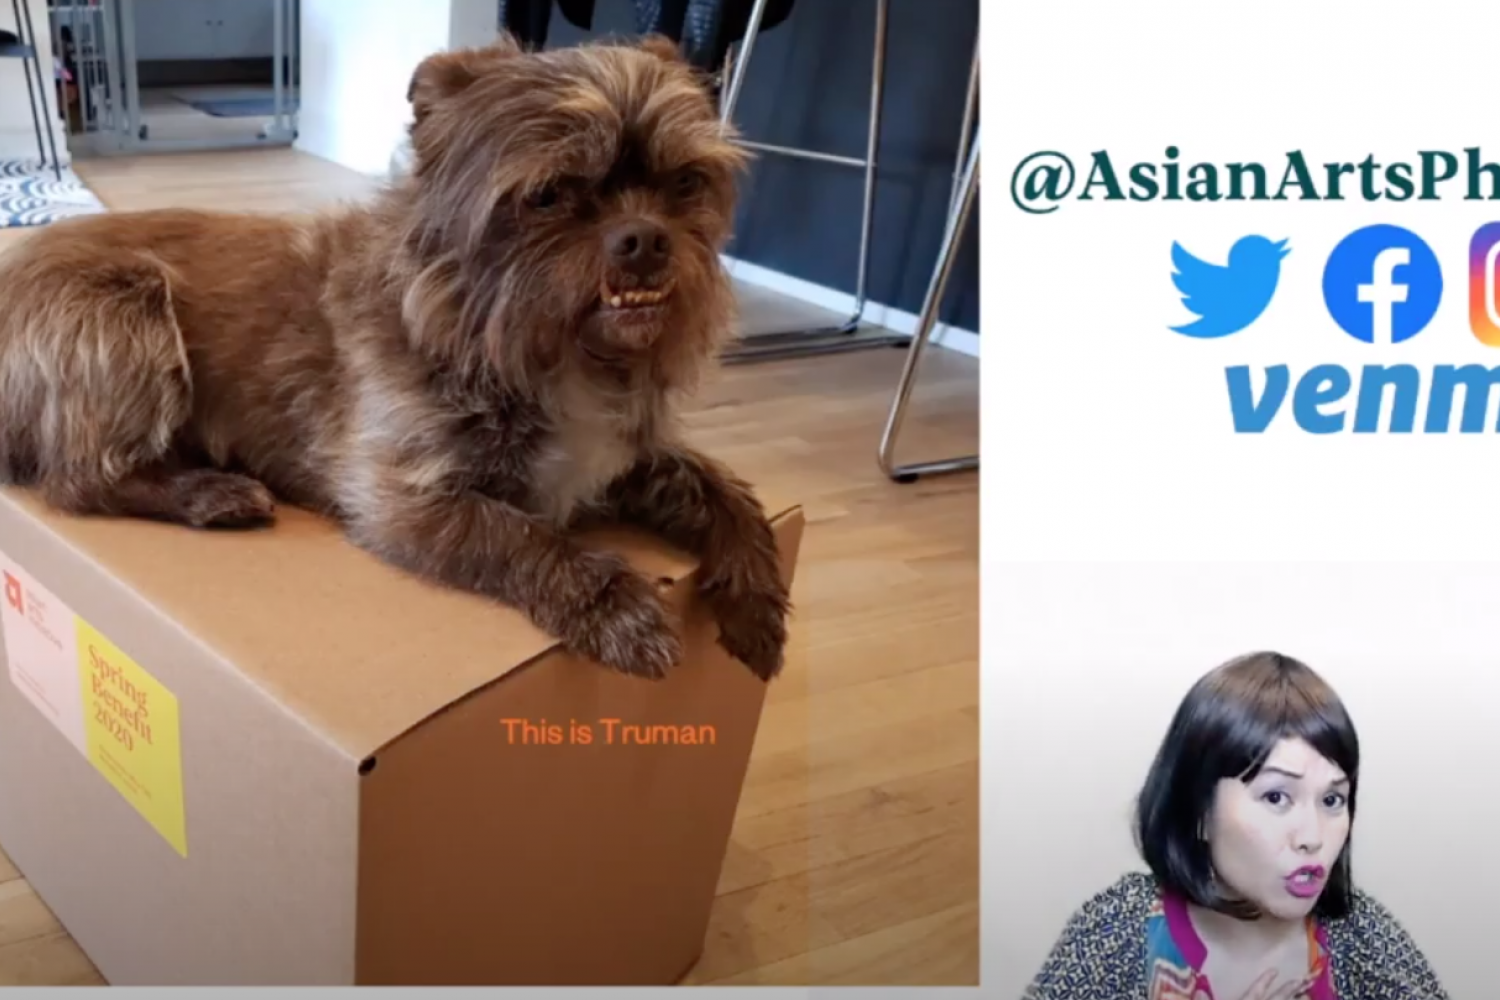 Cute small dog on a box with AAI logos and image of hostess superimposed